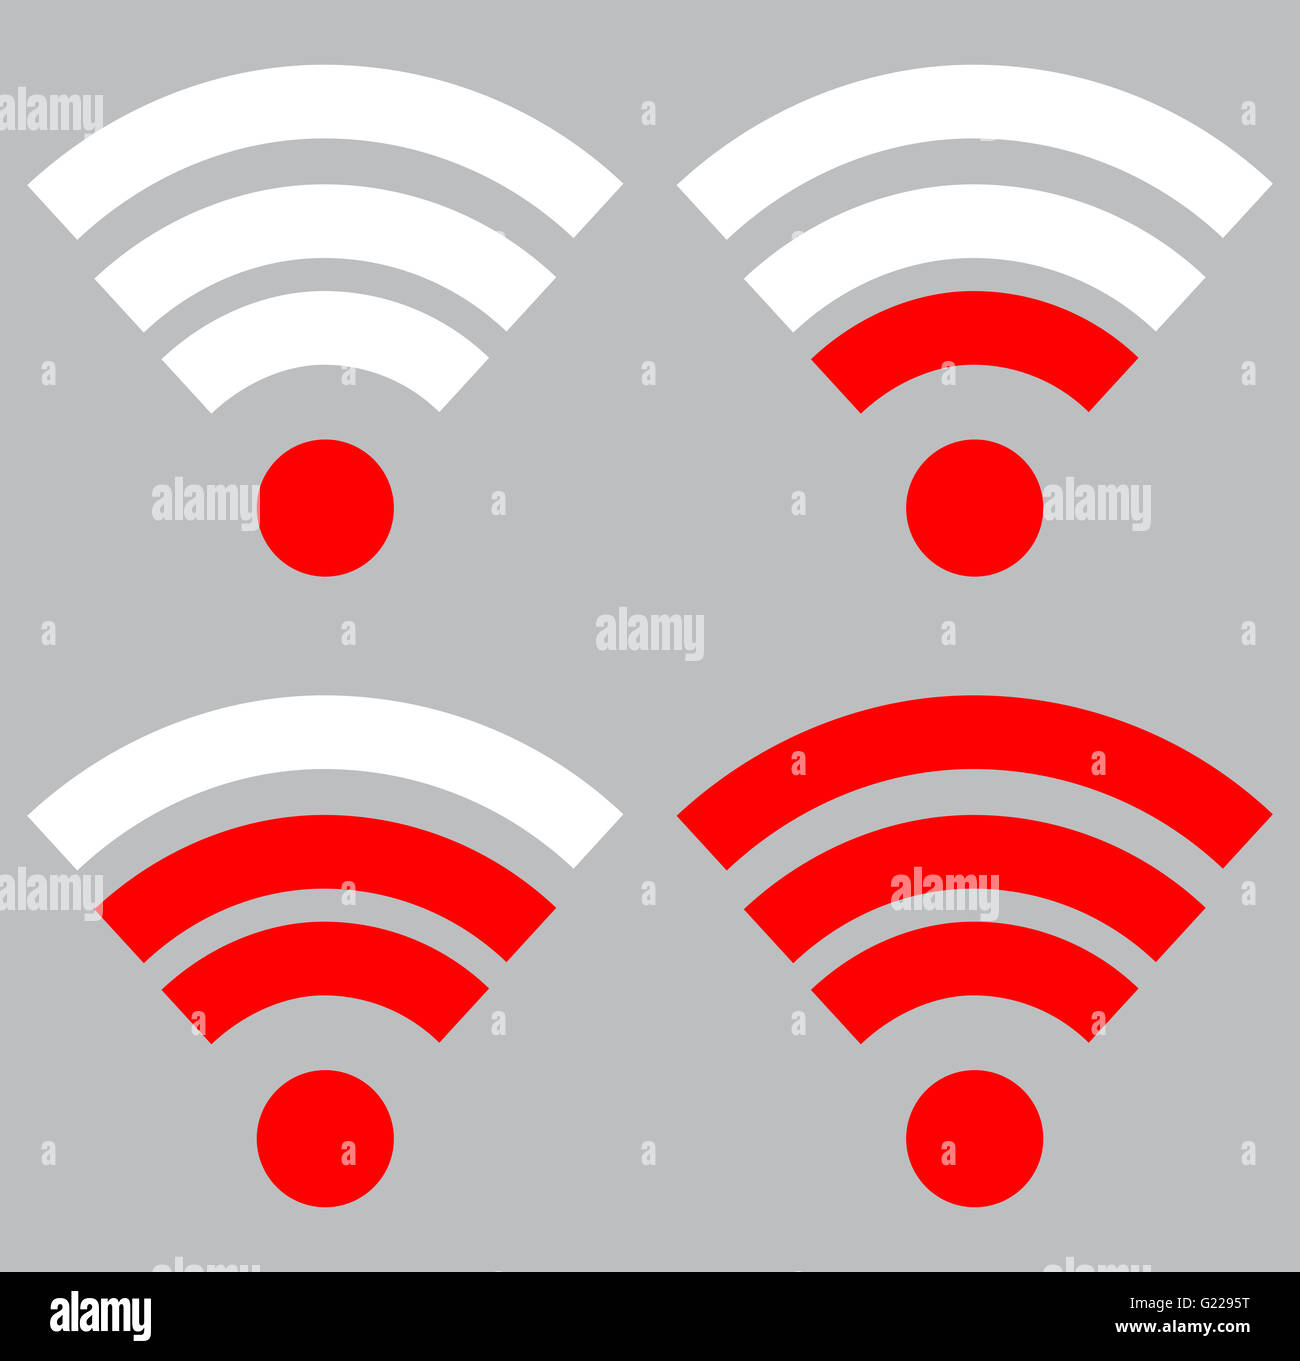 hight resolution of connection wireless and strength wi fi signal internet indicator level wifi vector flat design illustra